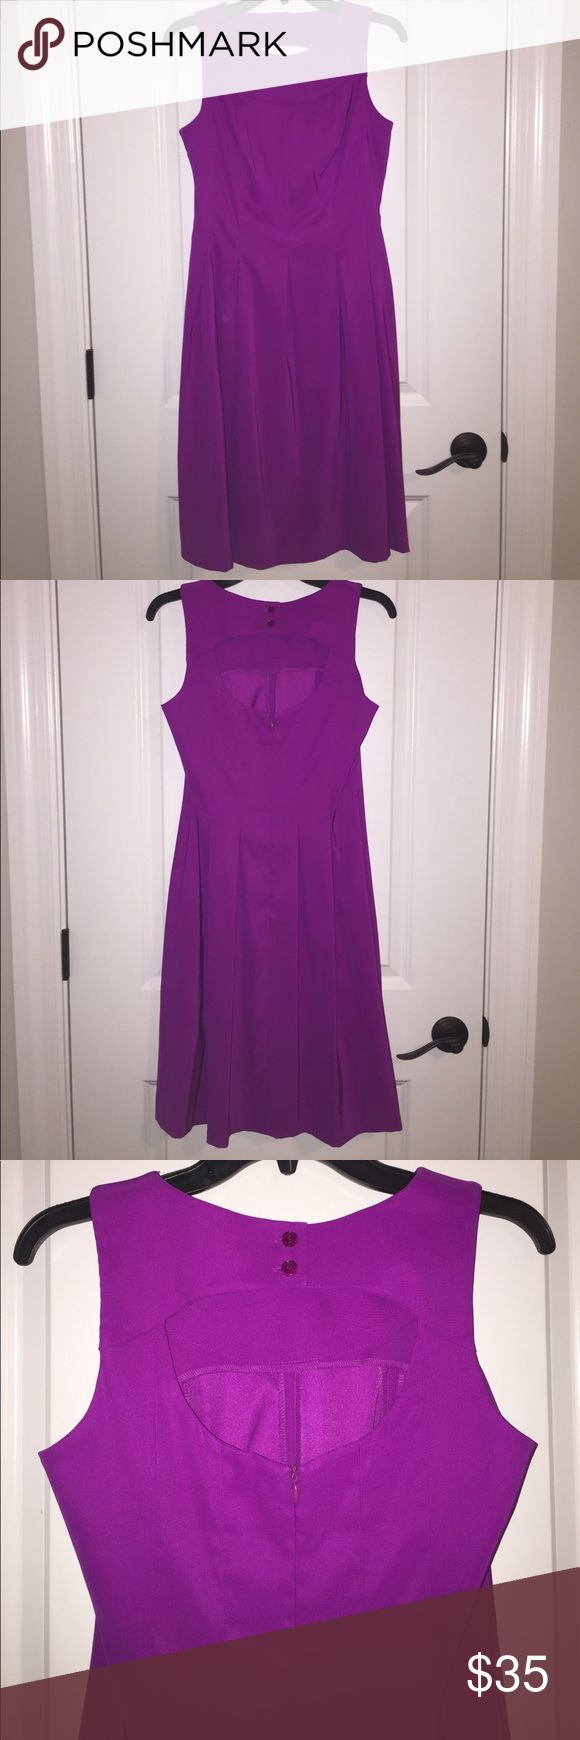 NWOT Kim Rogers Magenta Dress Never worn. Perfect for so many occasions! From a smoke and pet free home. Kim Rogers Dresses